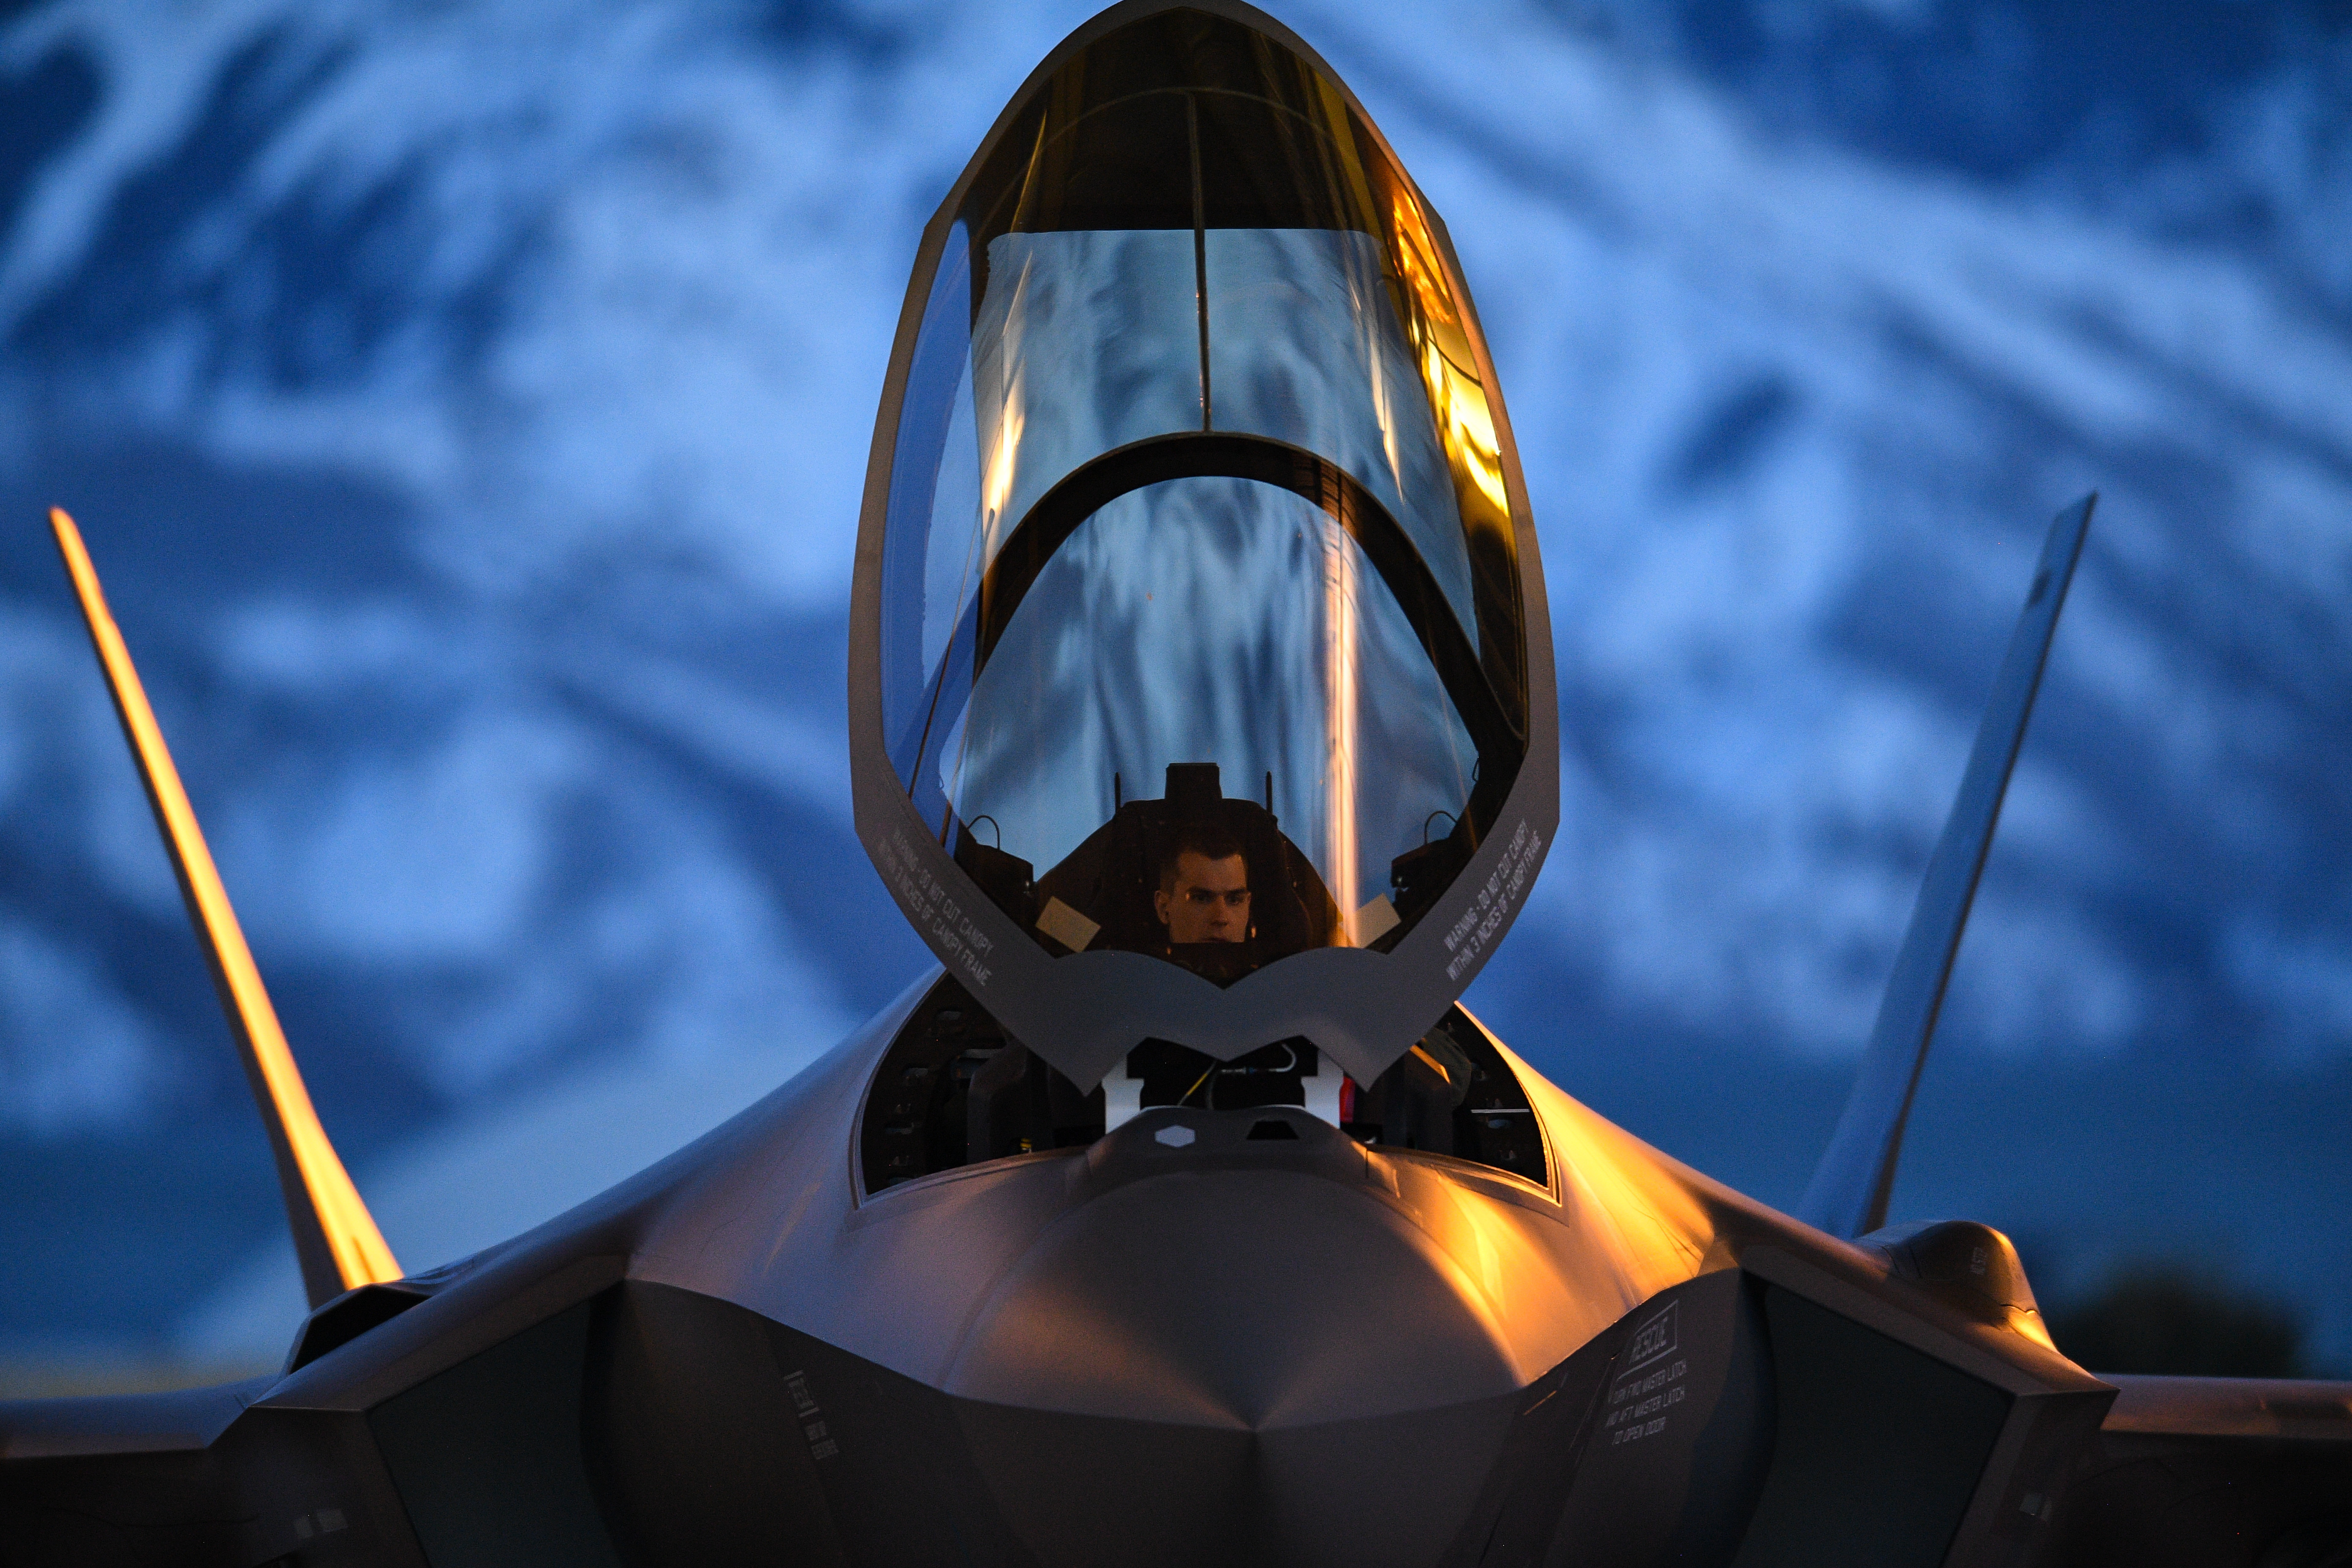 A pilot from the 388th Fighter Wing's 421st Fighter Squadron prepares to launch an F-35A during night flying operations at Hill Air Force Base, Utah, March 26, 2019. The 388th Fighter Wing is the Air Force's first combat-coded F-35A wing. (R. Nial Bradshaw/U.S. Air Force)